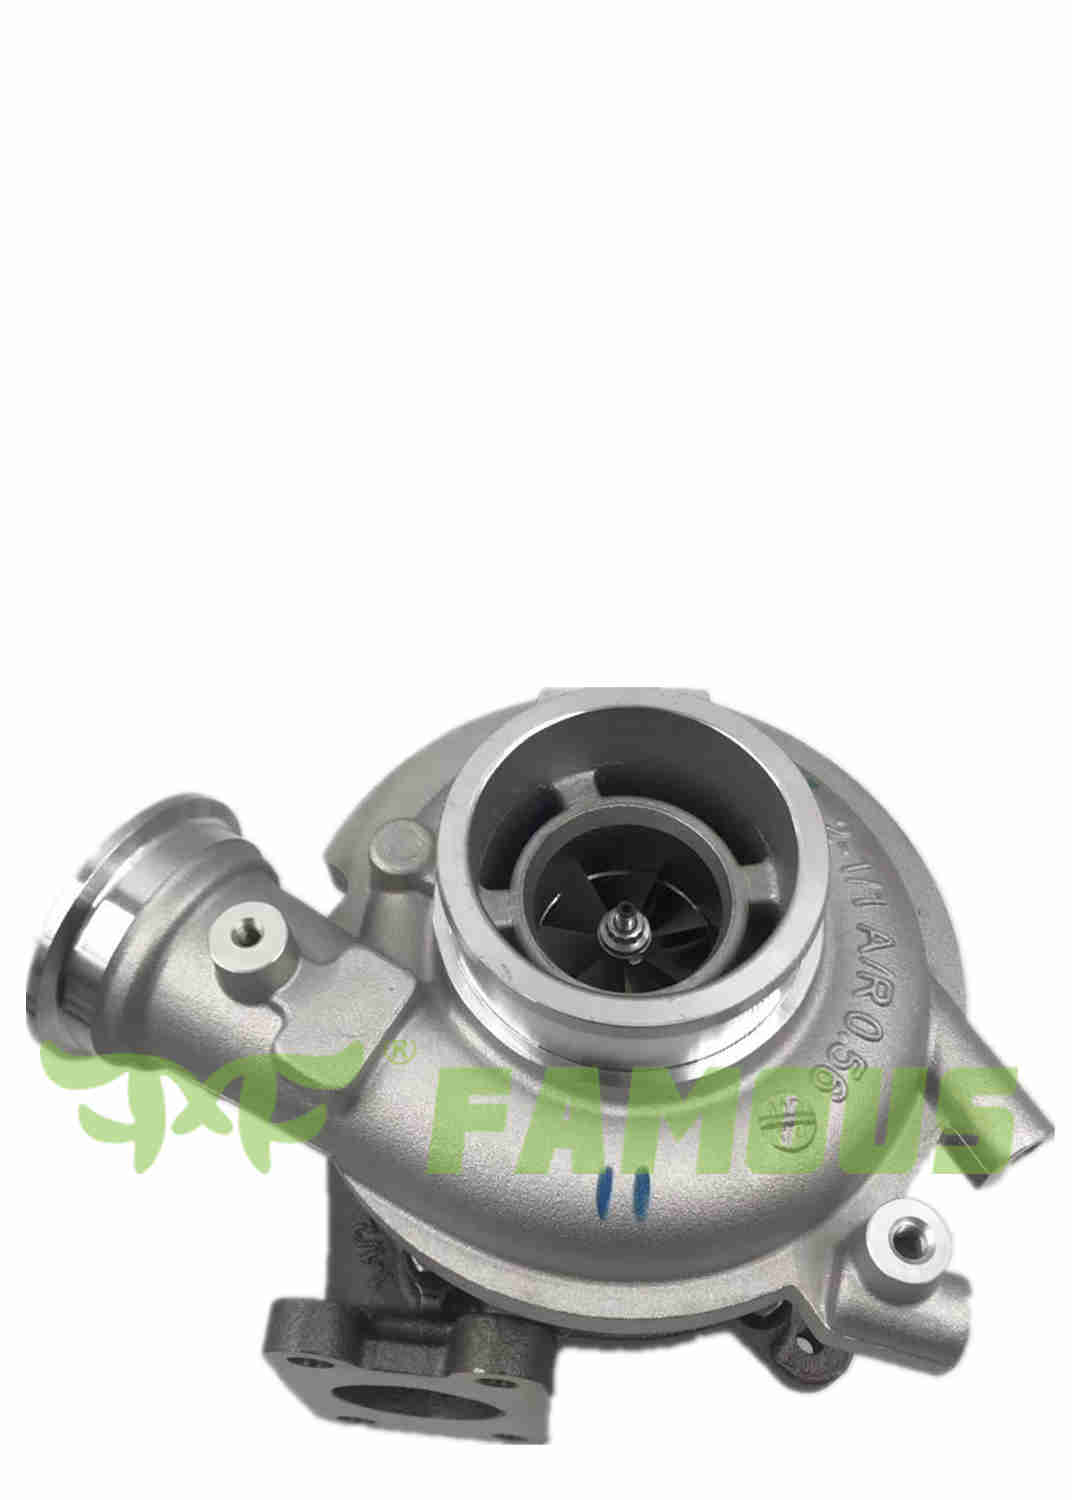 7004300X2 821142-5001S Turbo charger GT20V 821142-0001 821142-1